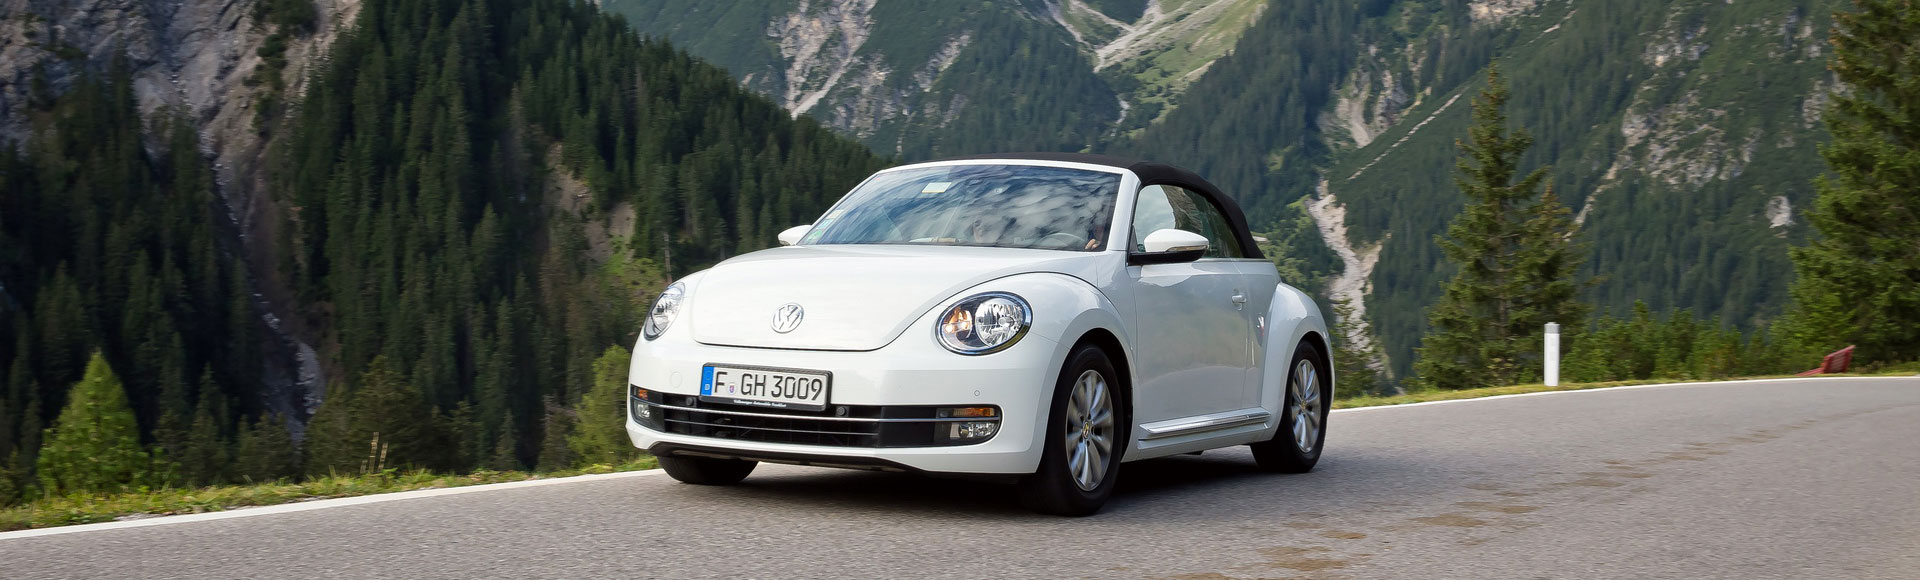 VW Beetle Cabrio 2015 0080 Sommer